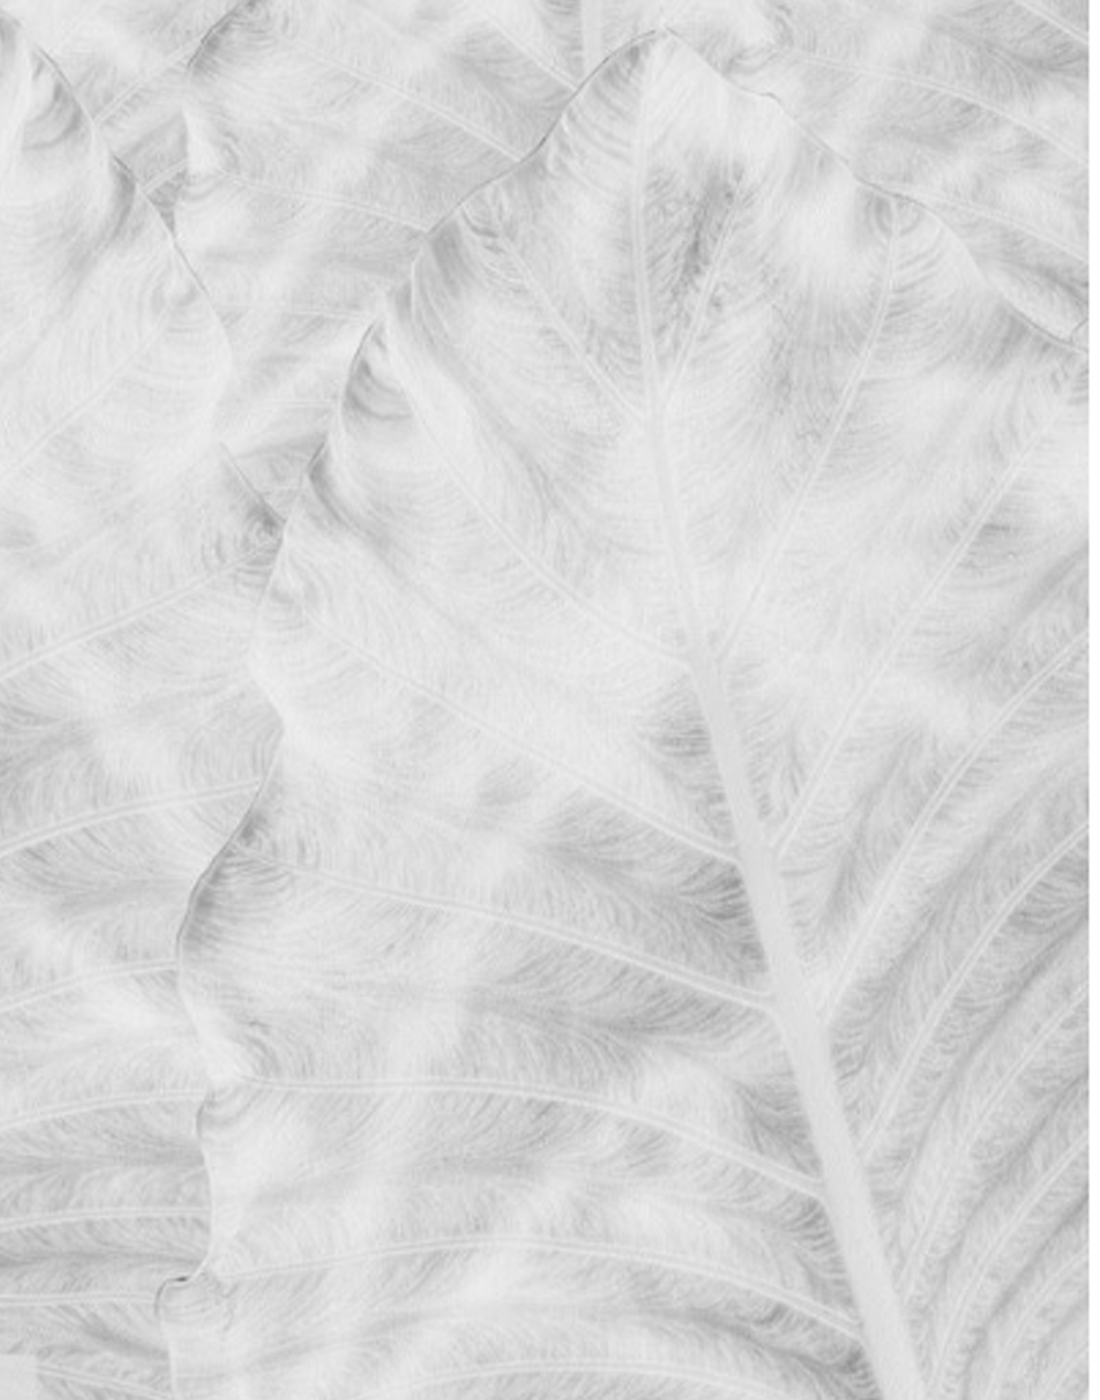 SHADOW FROND WHITE.jpg